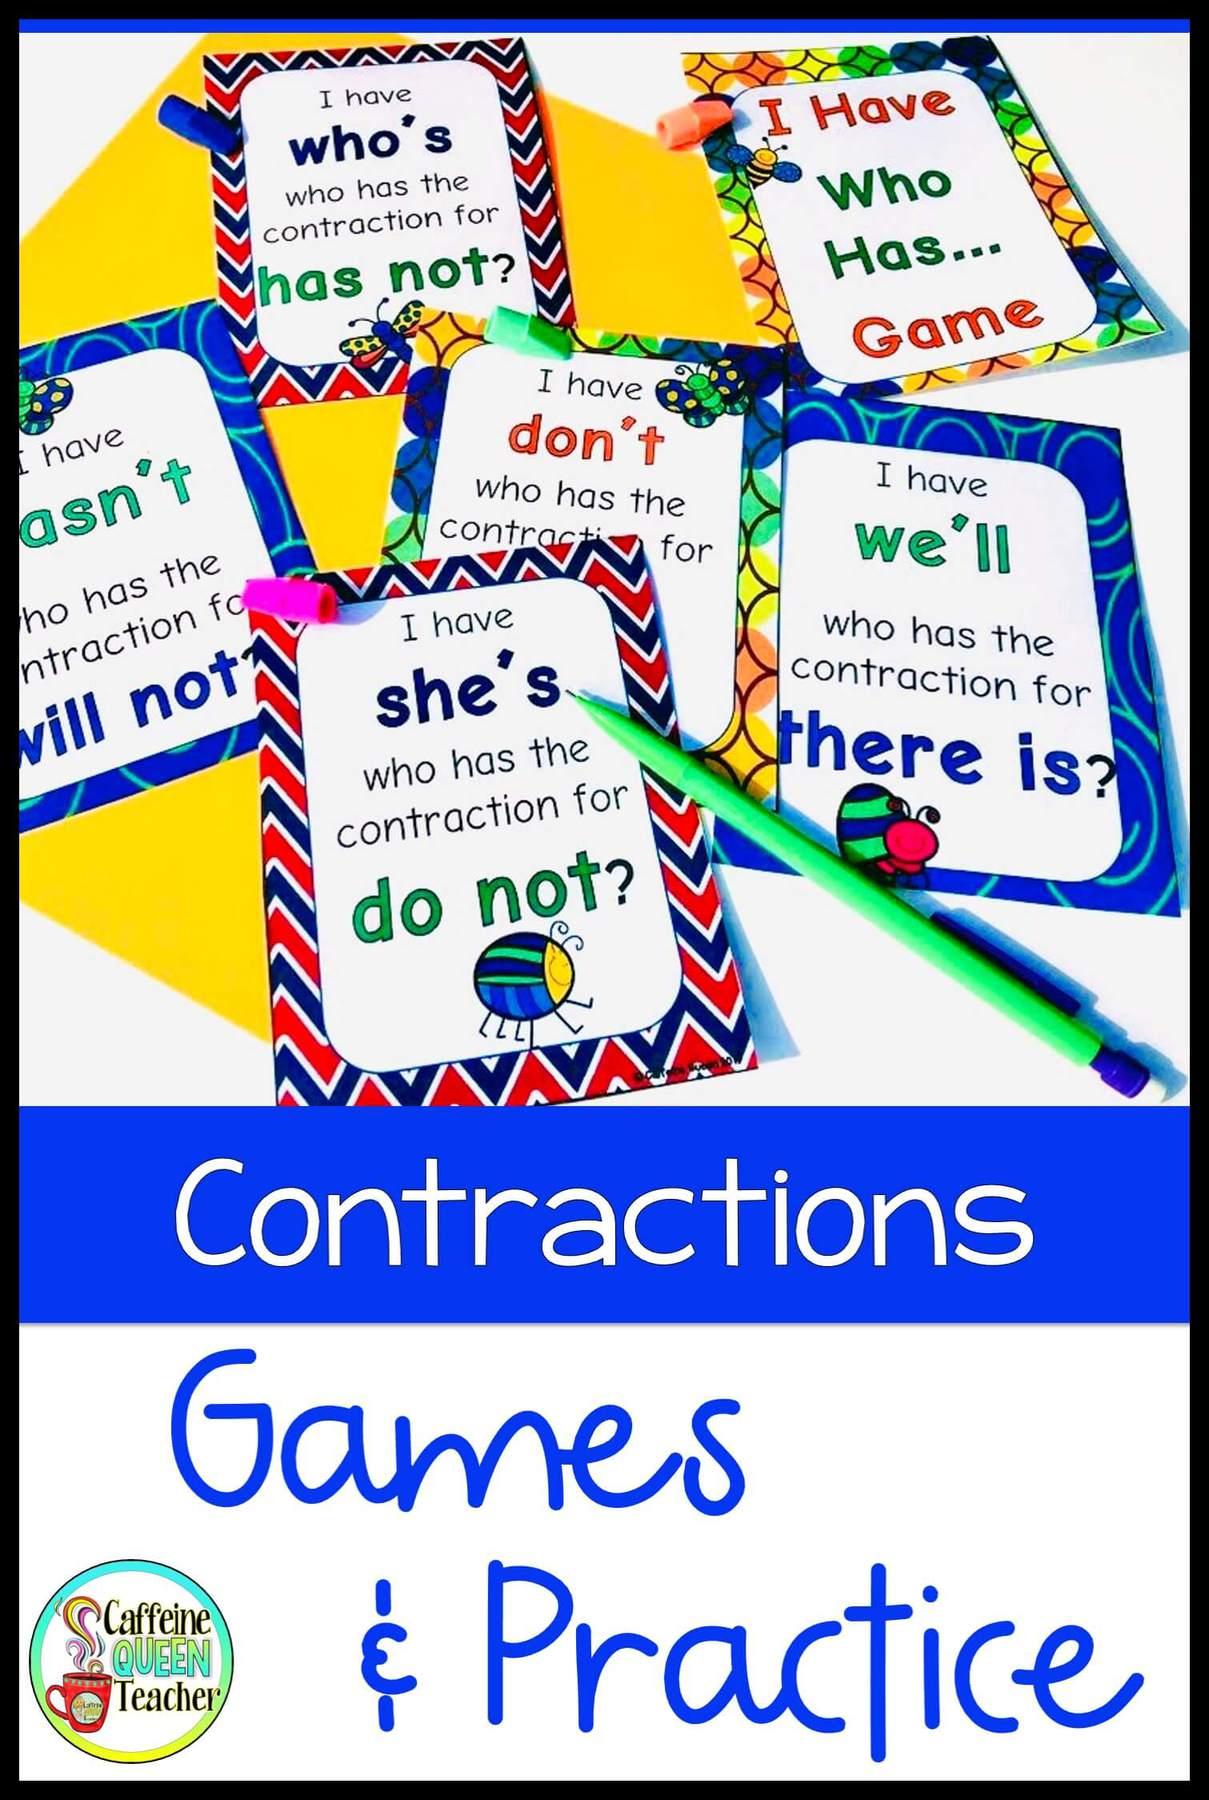 contractions-games-learning-activities